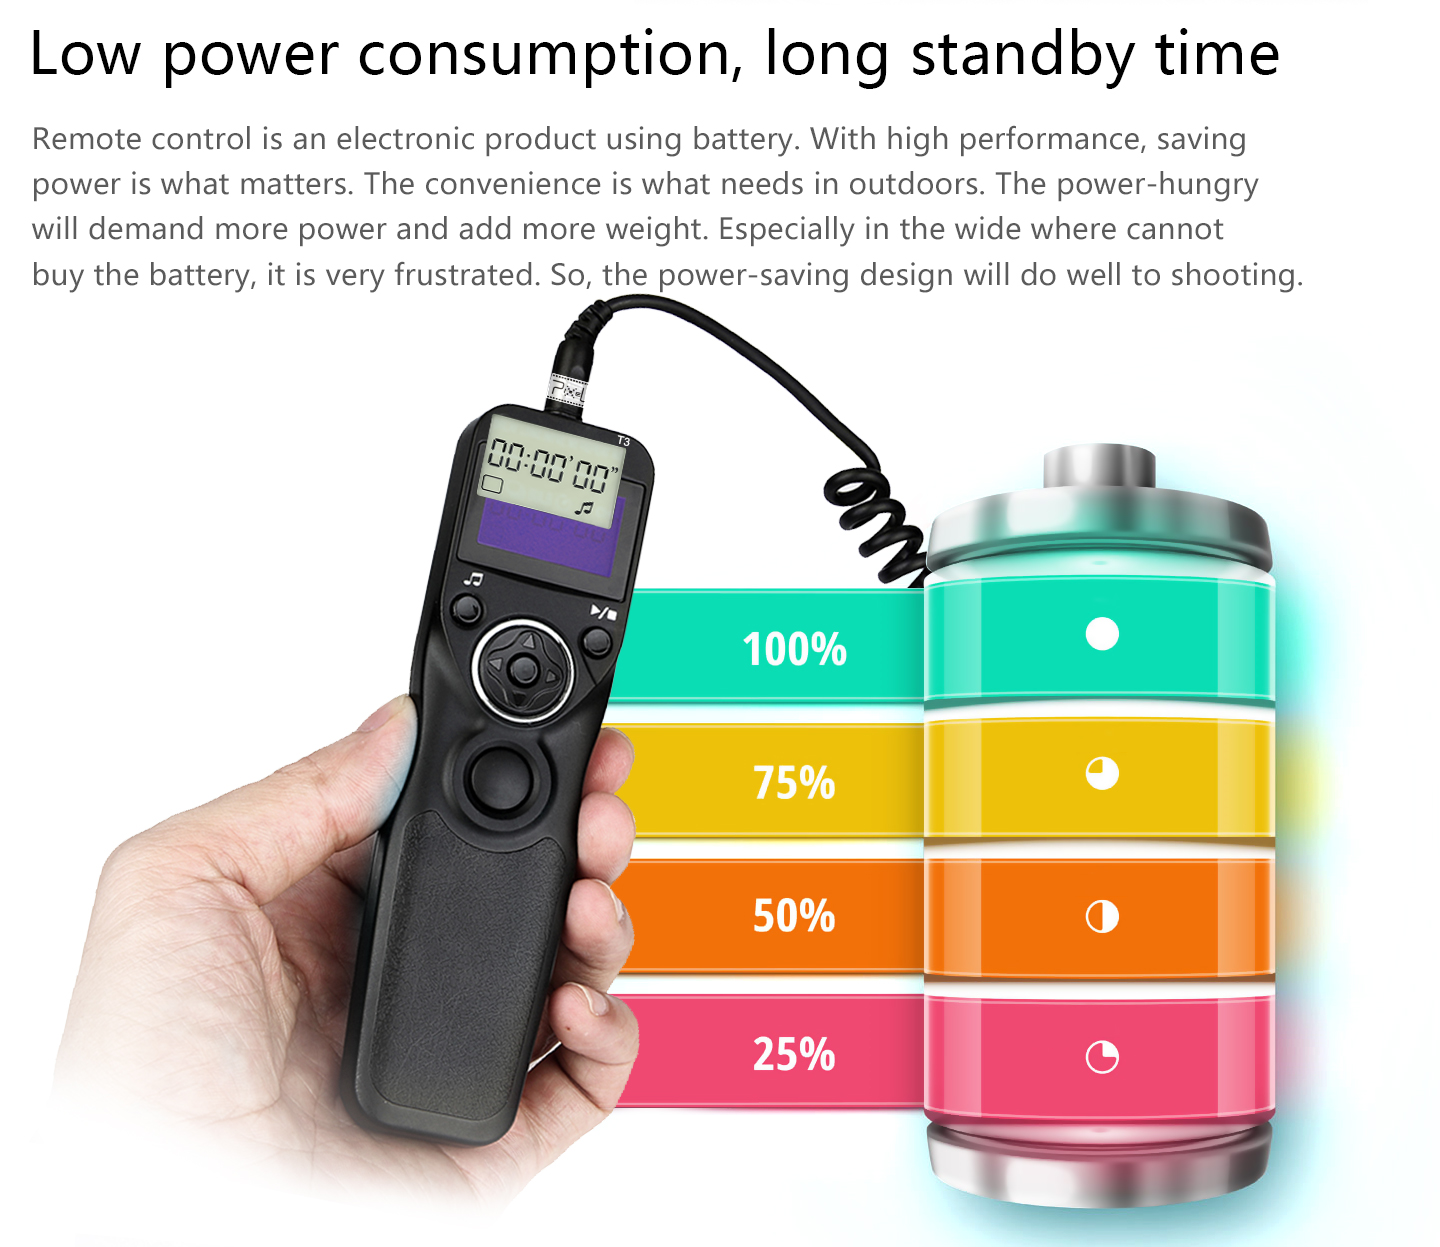 Low power consumption, long standby time